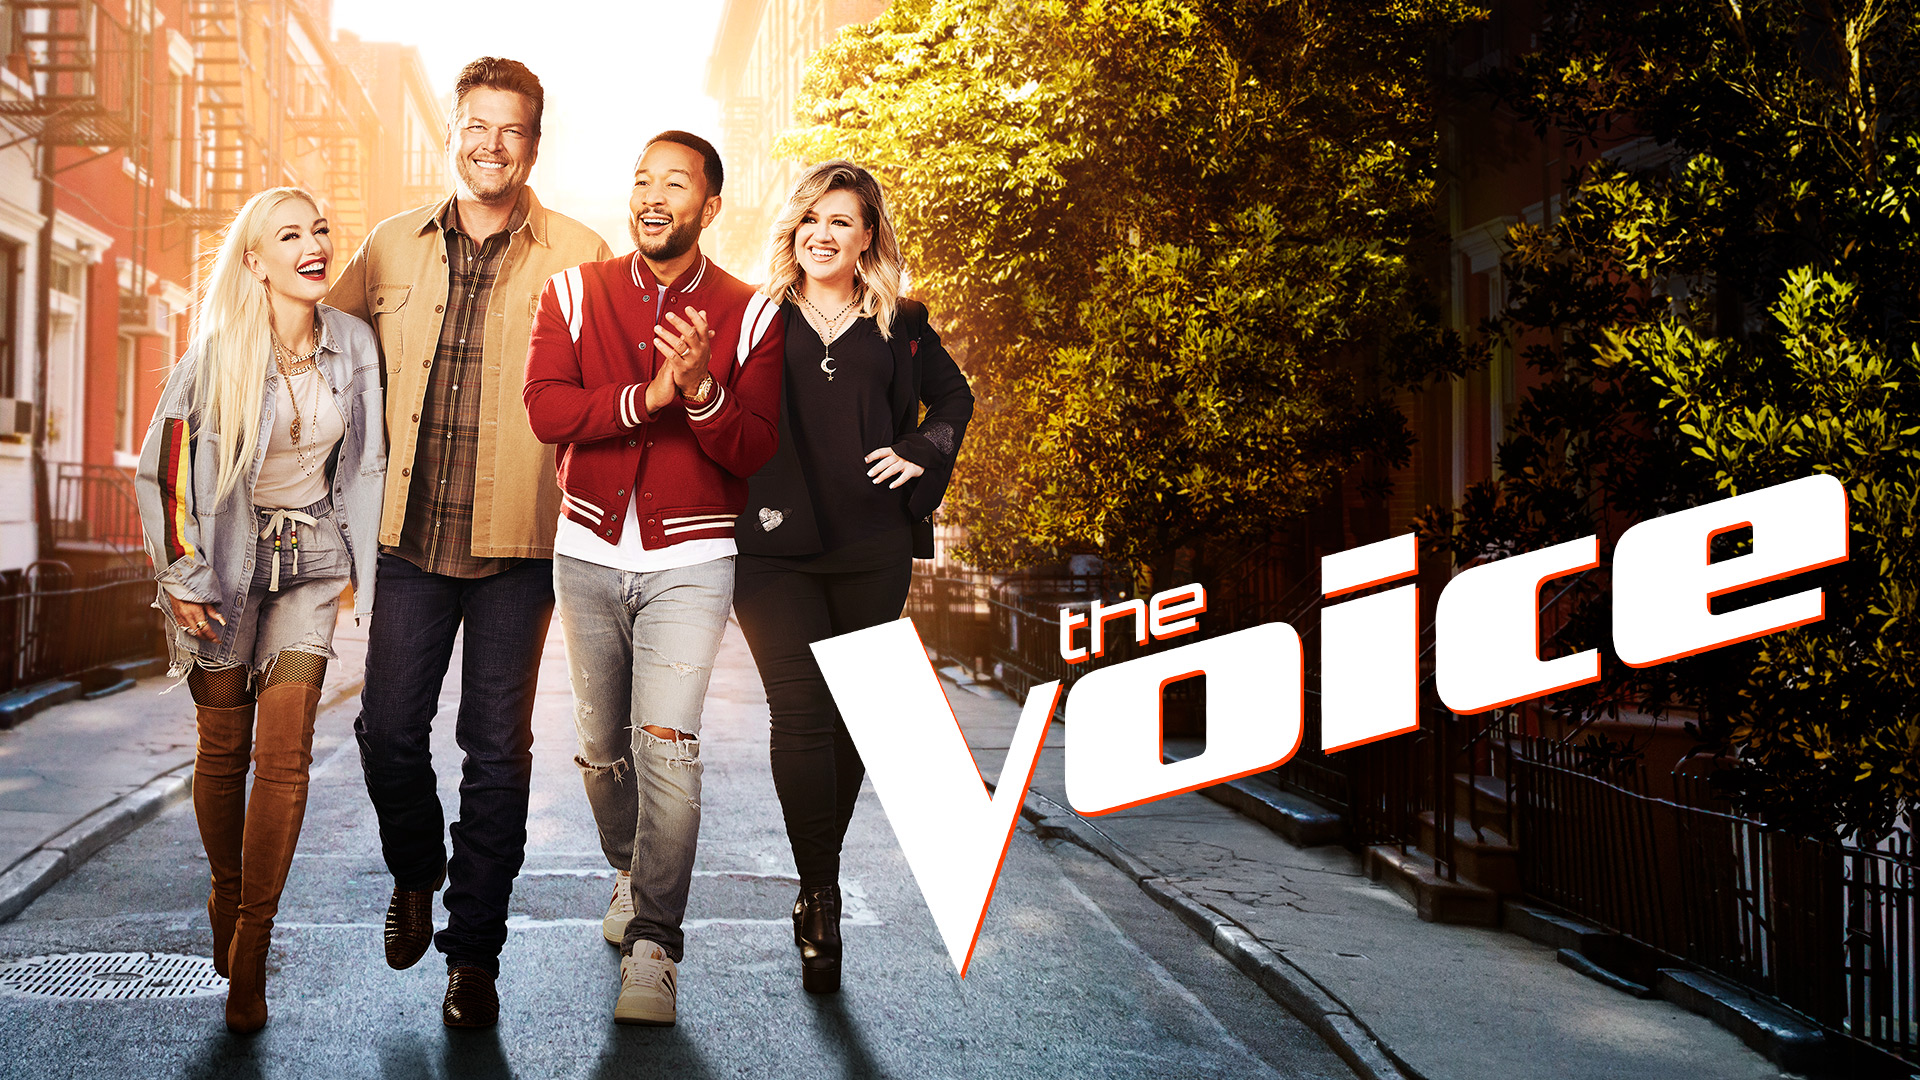 Watch The Voice Episodes at NBC.com